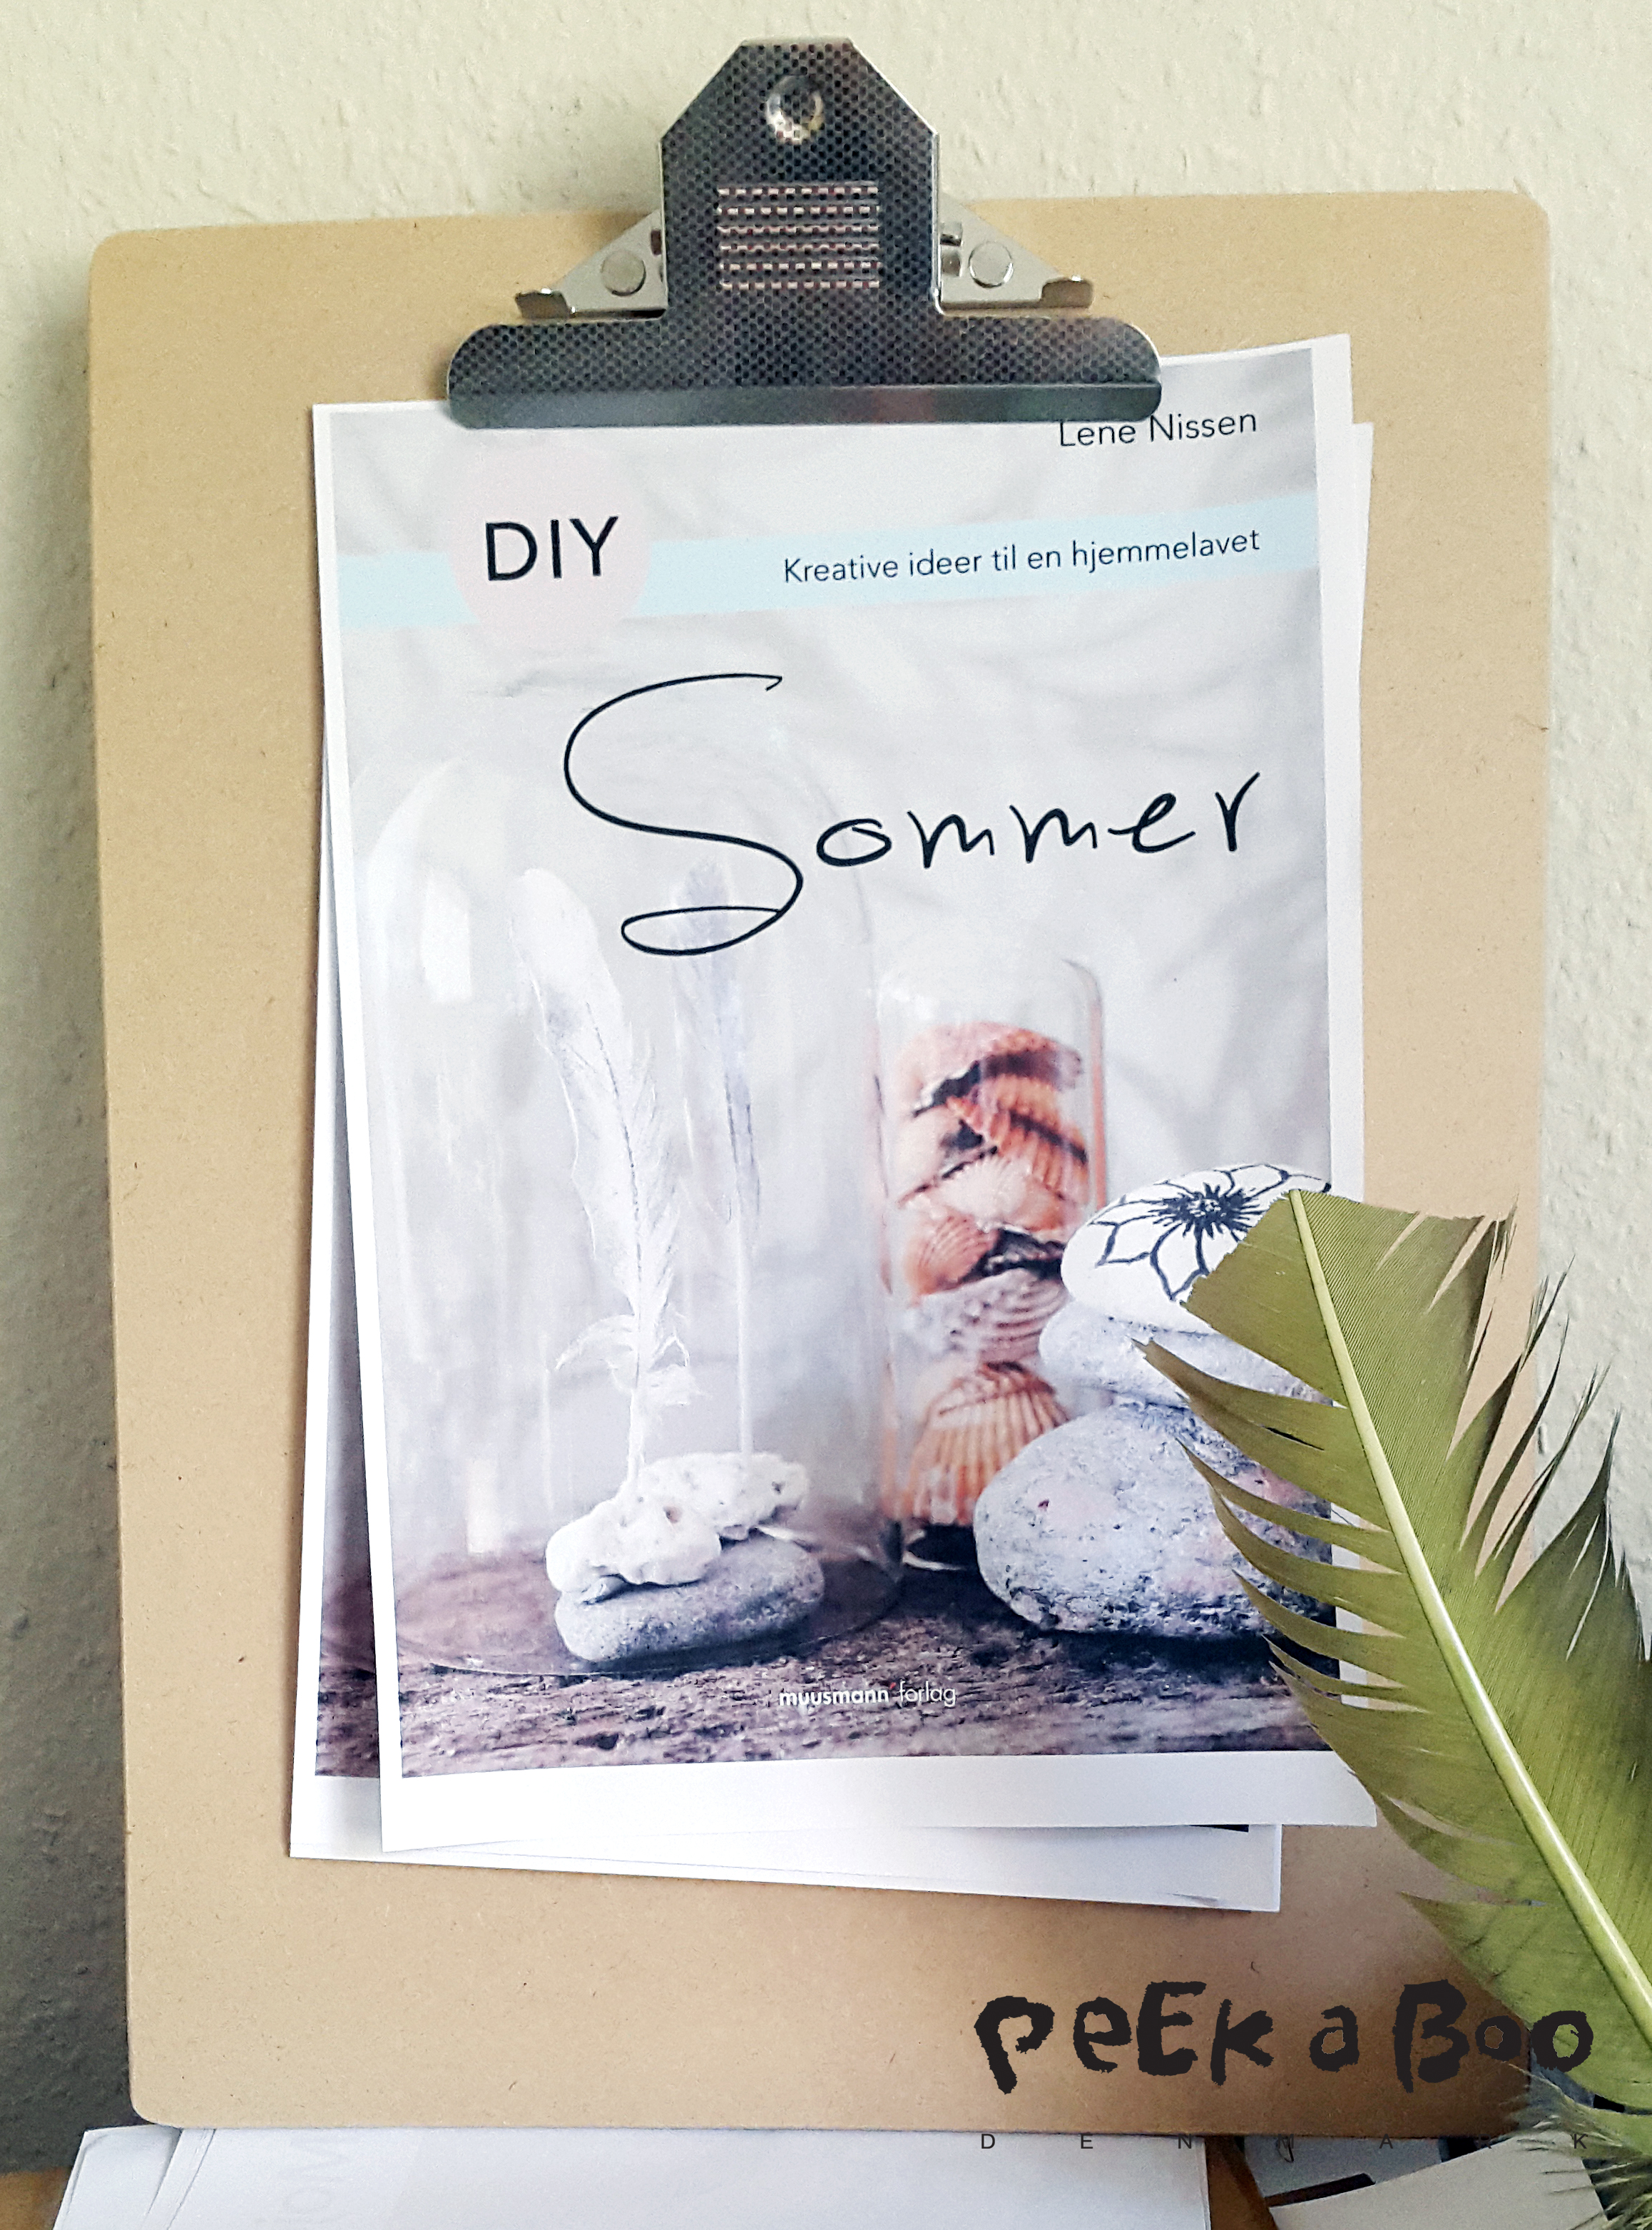 Front cover for my new book on summer DIY's. It will be released 19 of June and can be bought on saxo.com